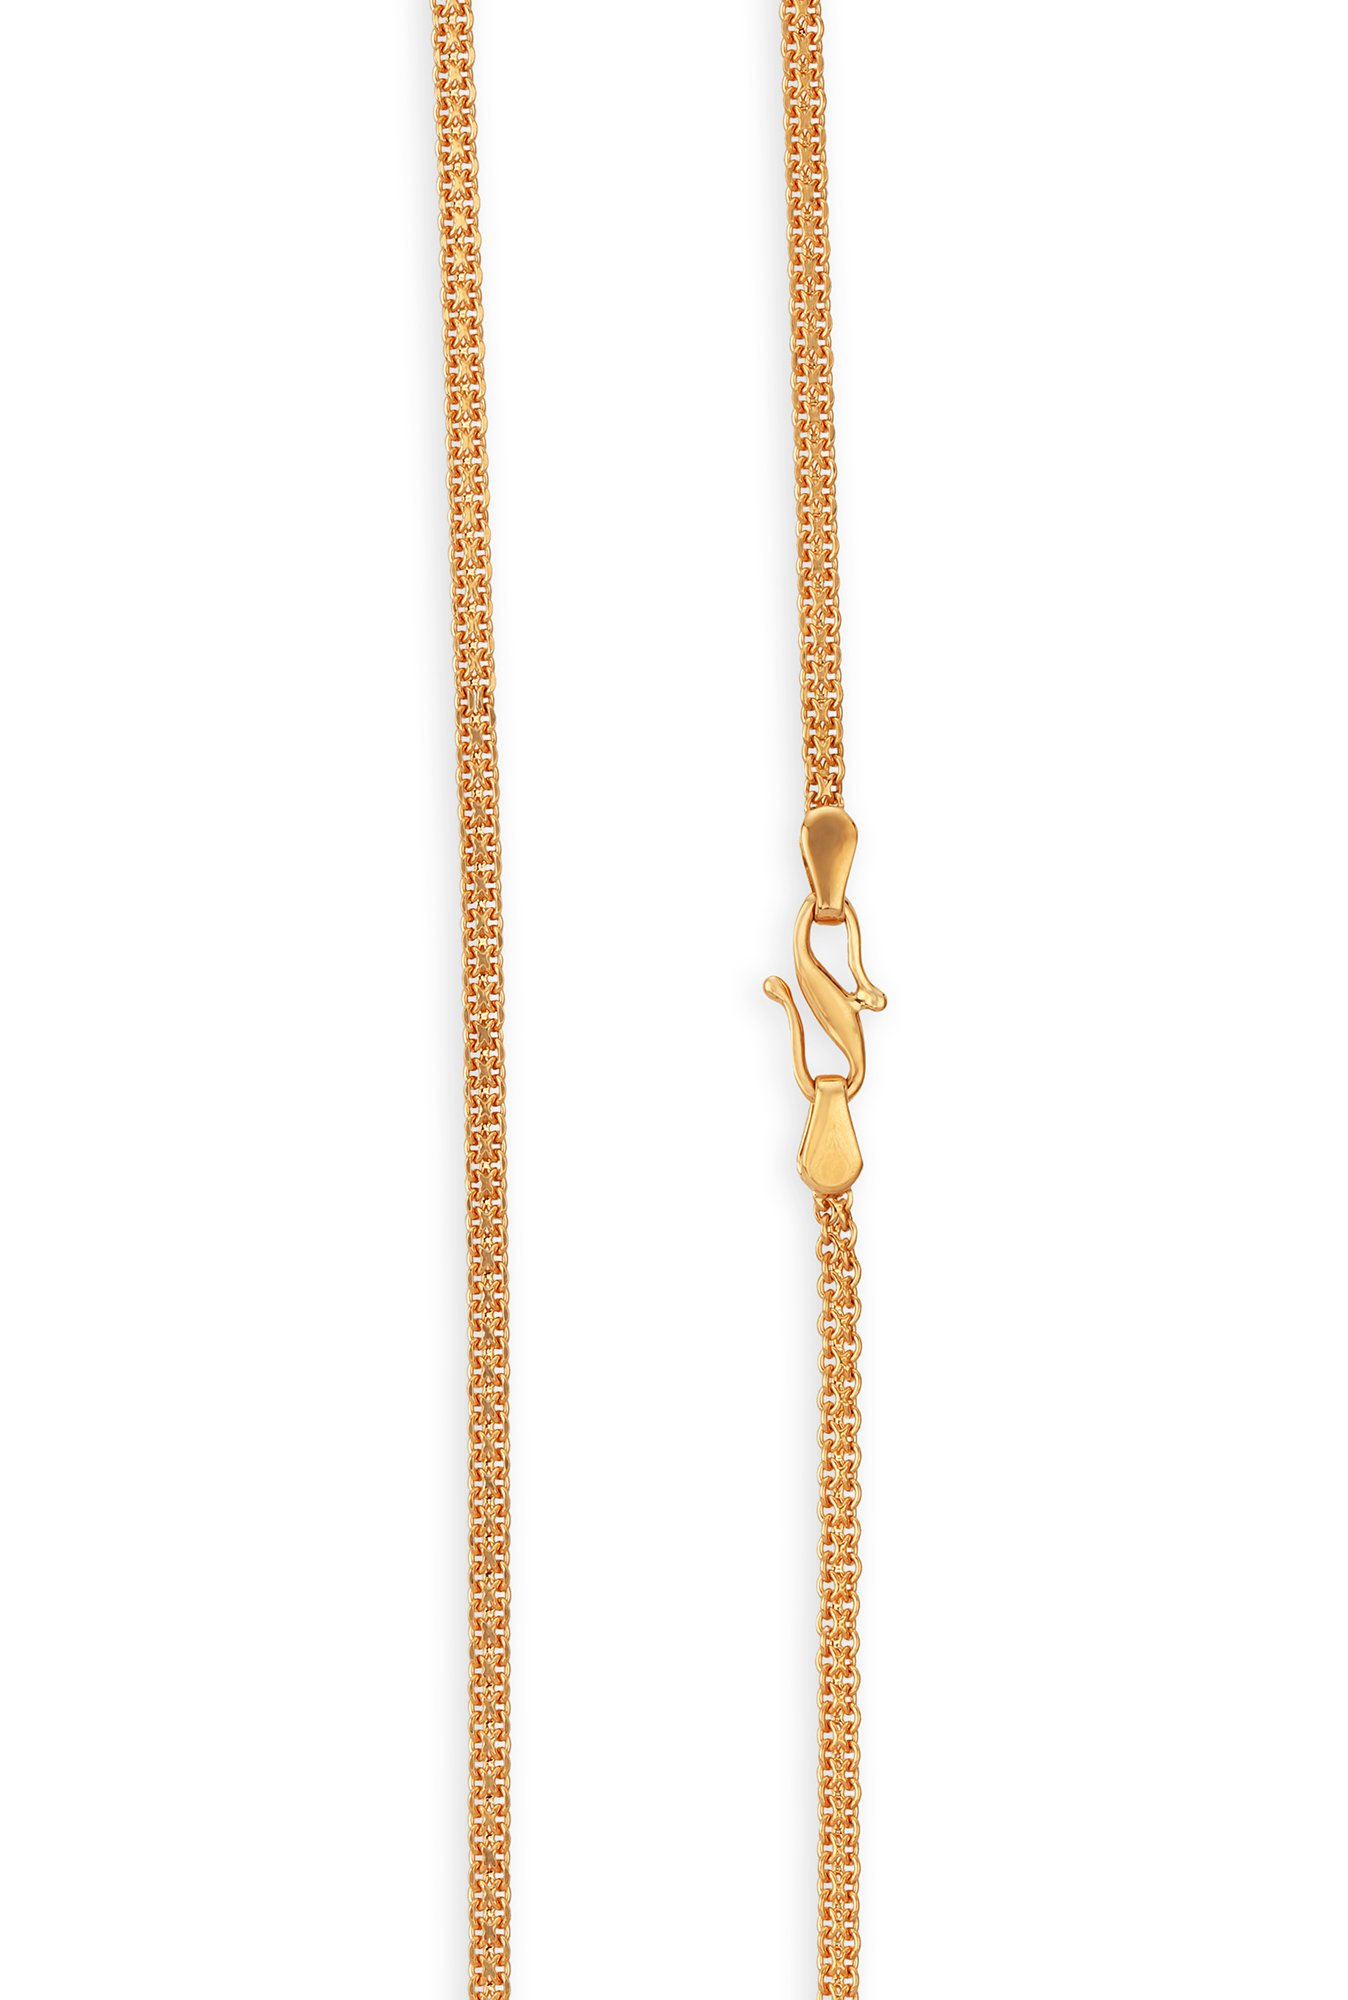 Buy Tanishq 18 Kt Gold Chain Online At Best Price Tata Cliq